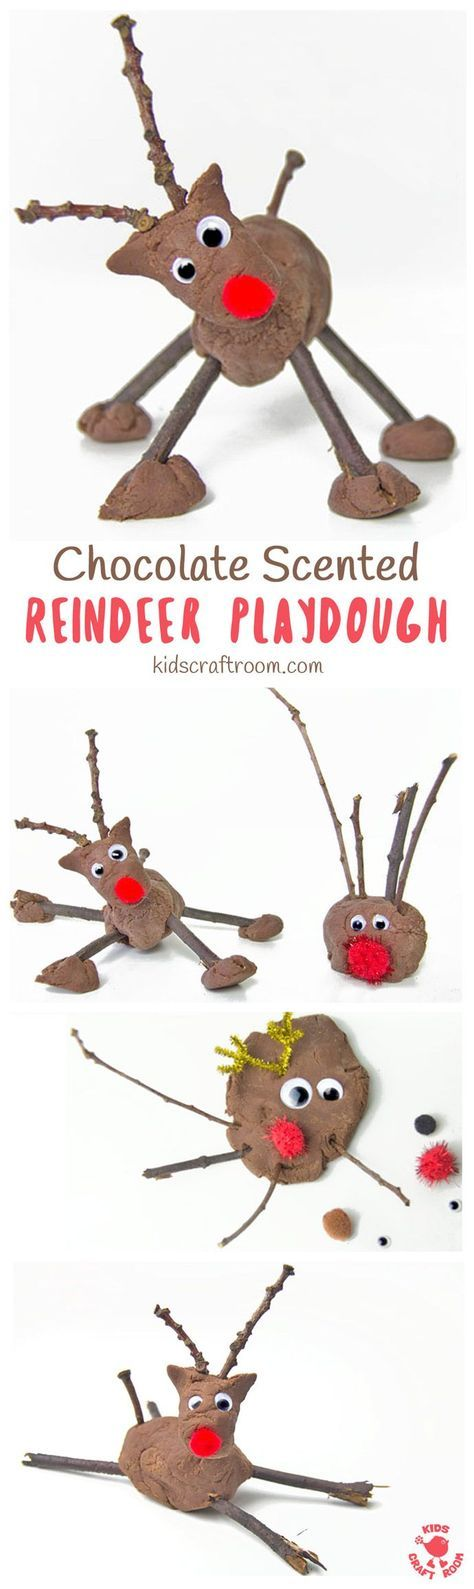 CHOCOLATE SCENTED REINDEER PLAY DOUGH is such a fun Christmas sensory play activity for kids. This no-cook play dough recipe is easy to make and so fun. Add sticks, eyes and red noses for an adorable reindeer craft session. #sensoryplay #christmas #sensory #playdough #playdoughrecipe #reindeer #reindeercraft #christmasactivities #christmasforkids #kidscraftroom via @KidsCraftRoom